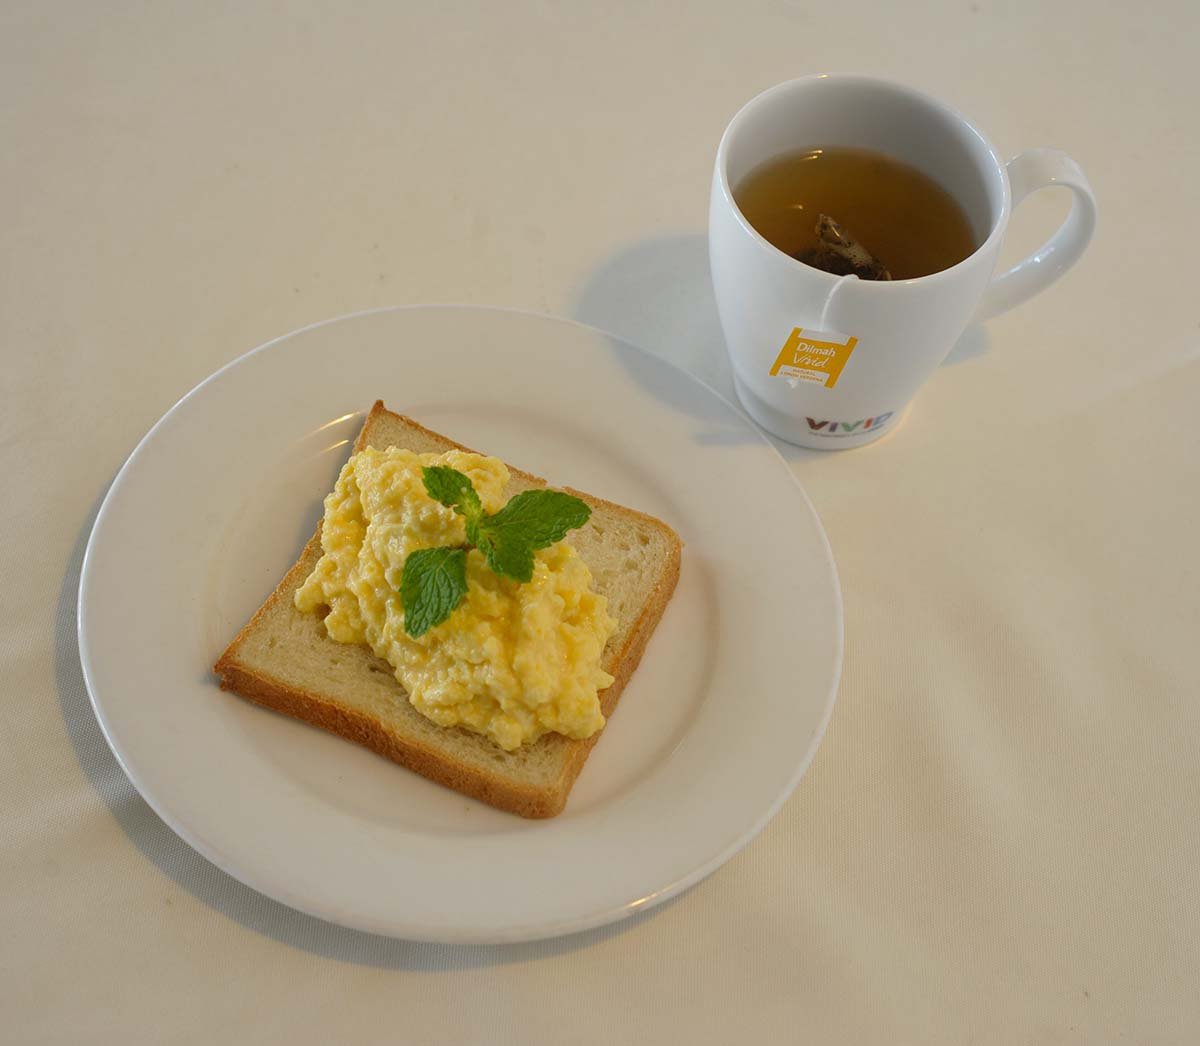 Natural Lemon Verbena with Poached or scrambled egg in butter & some milk